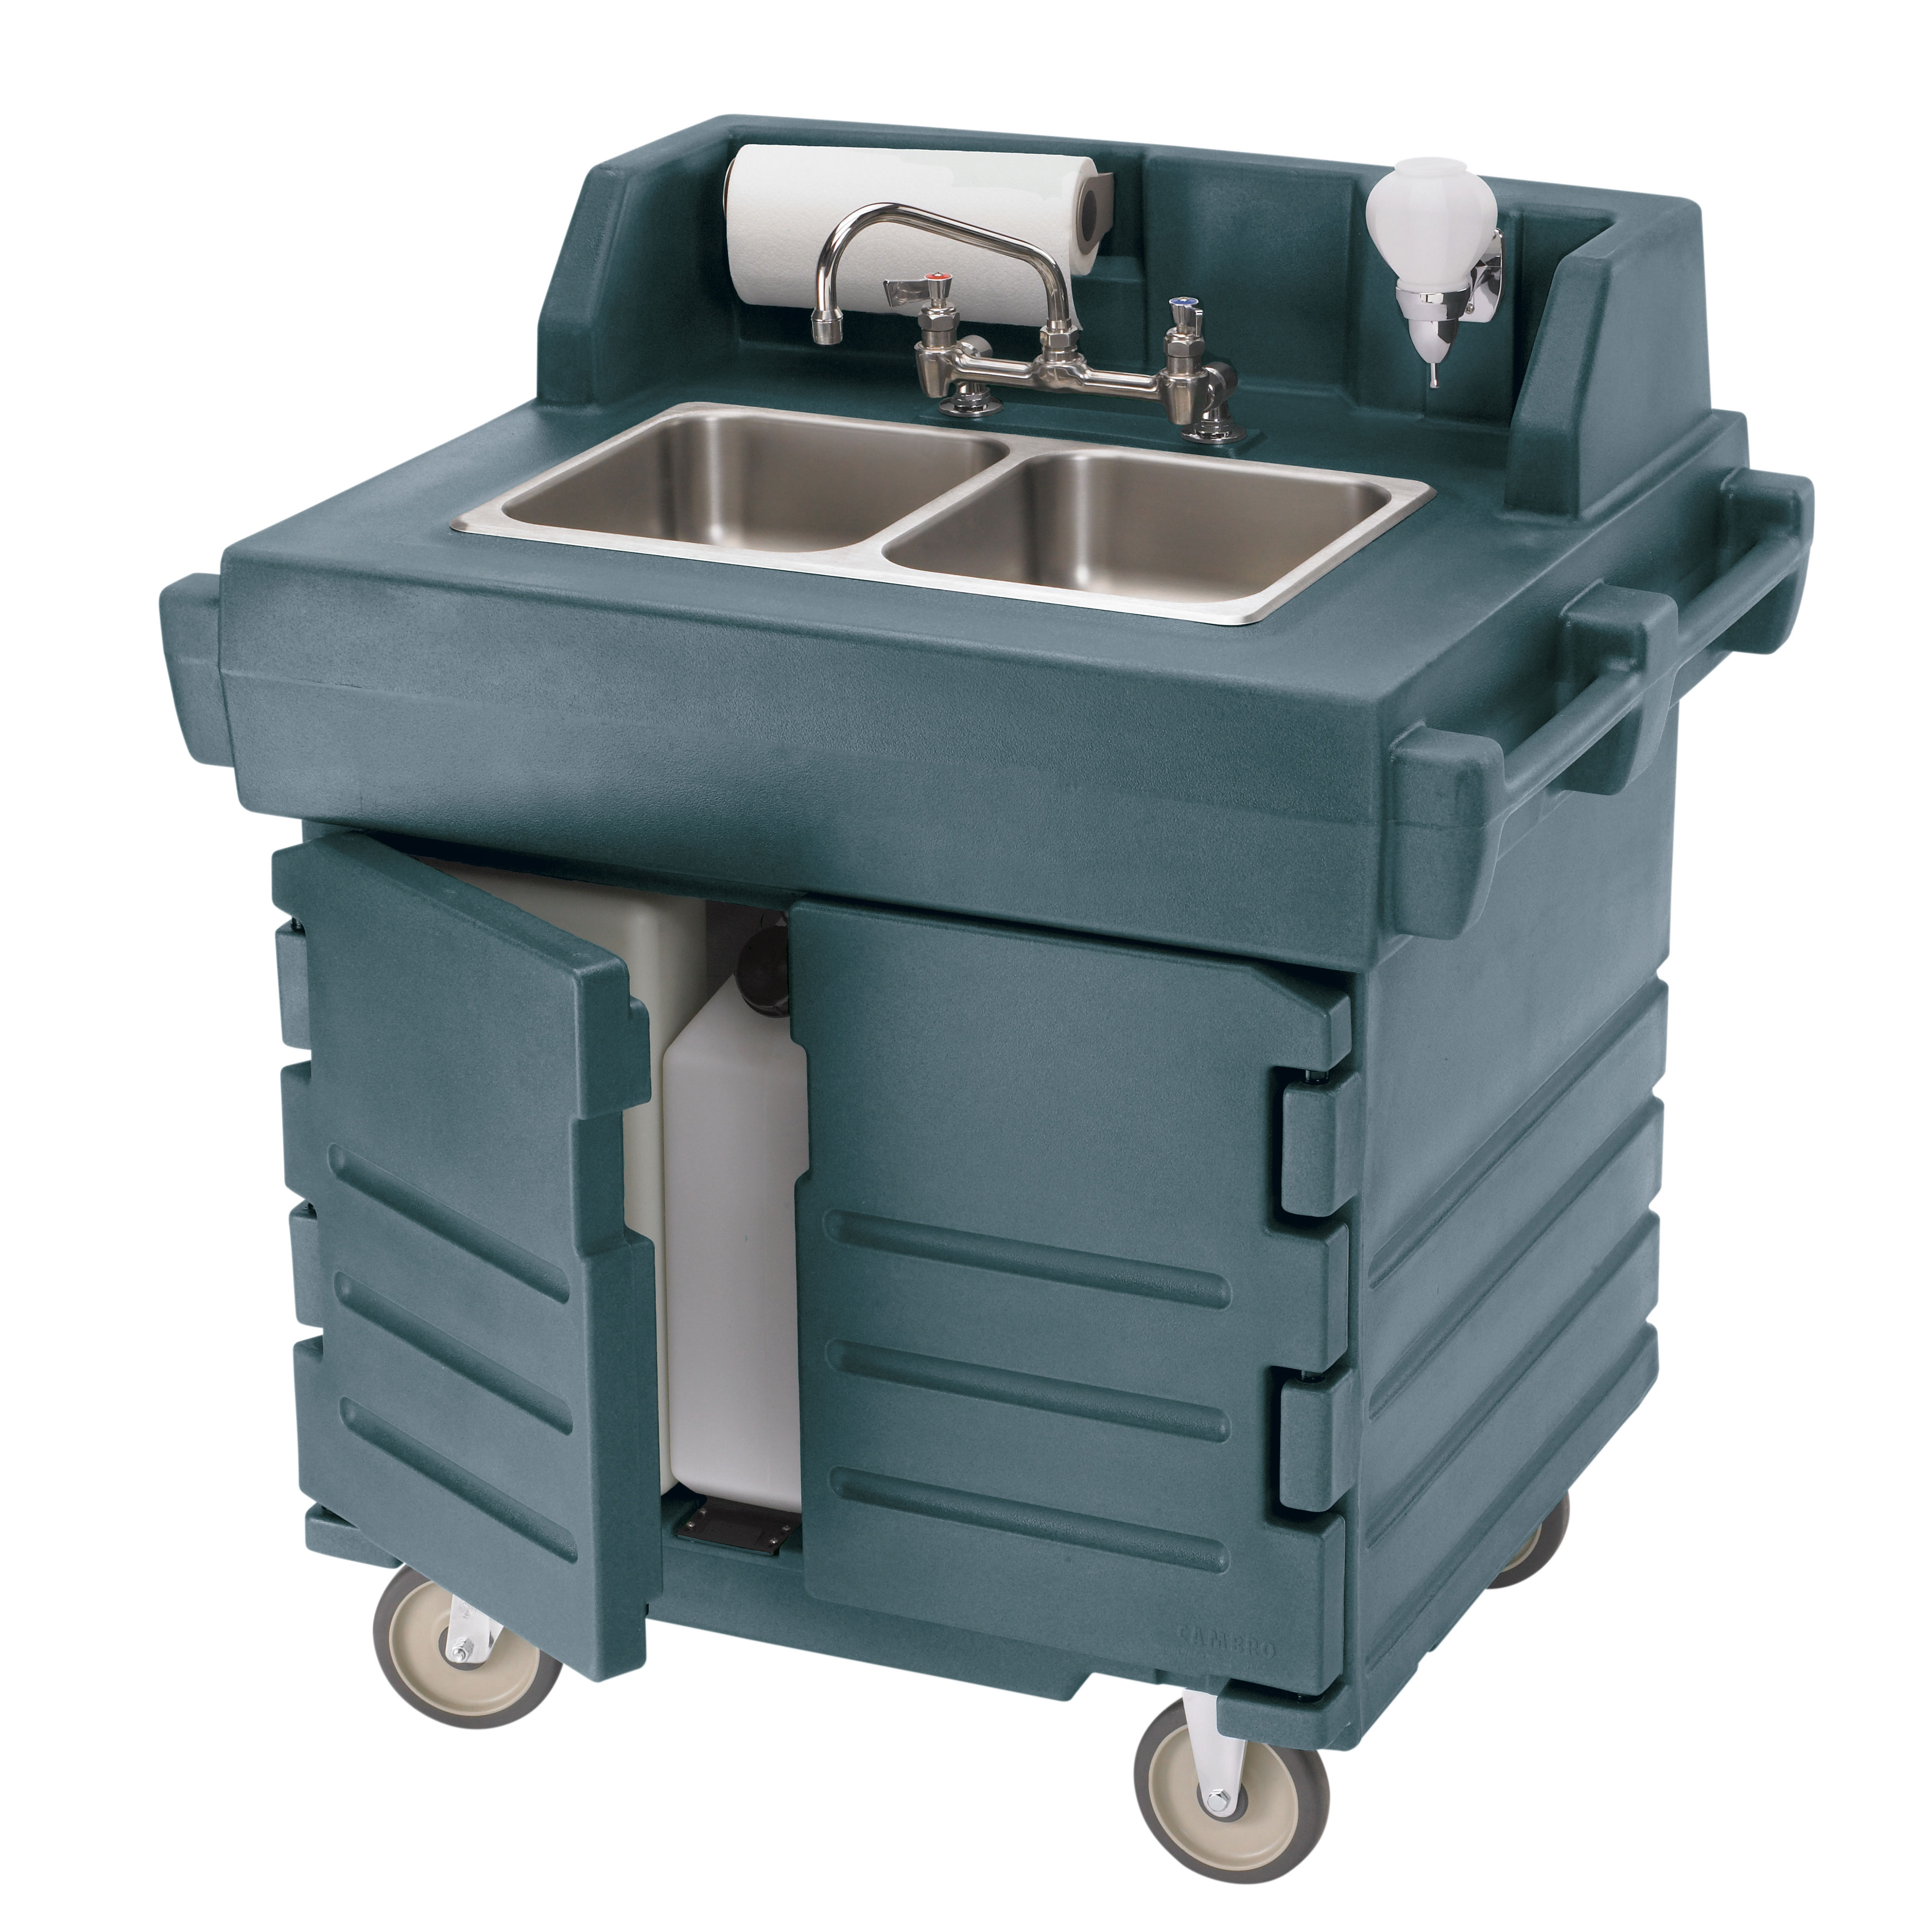 Cambro KSC402191 hand sink, mobile